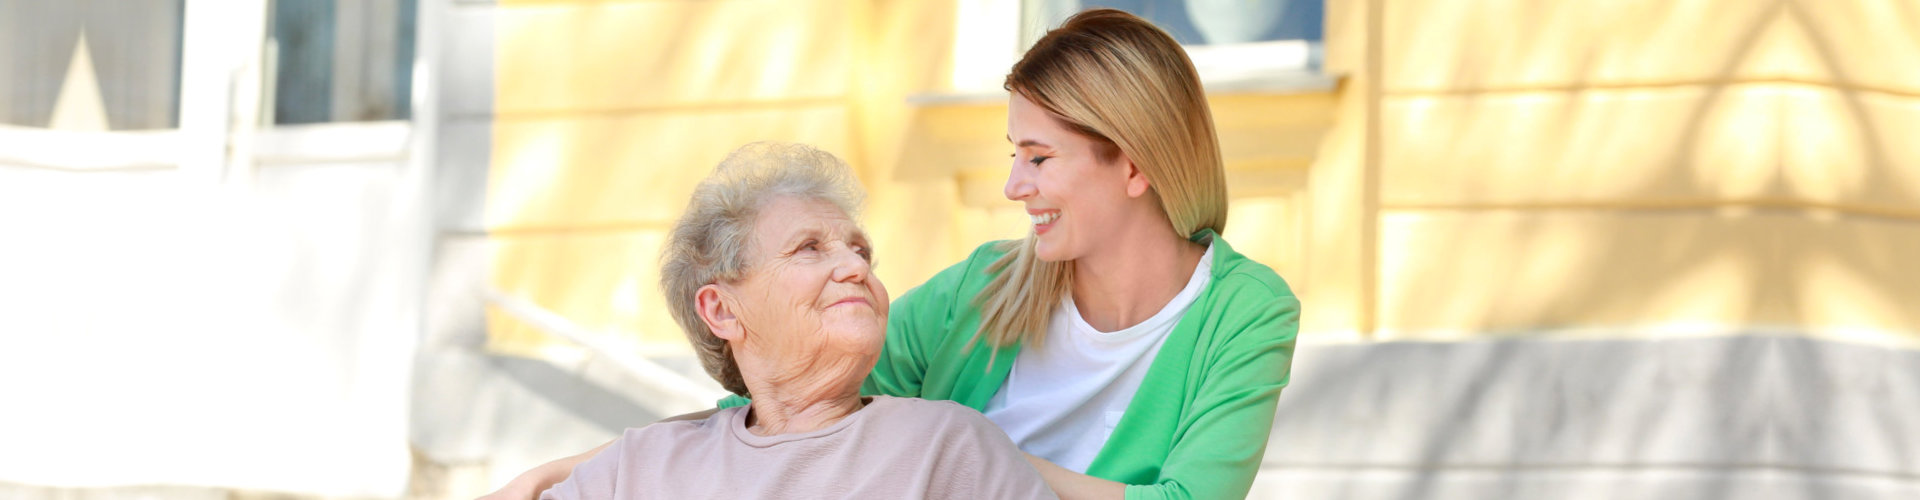 caregiver and senior woman looking at each other outdoor